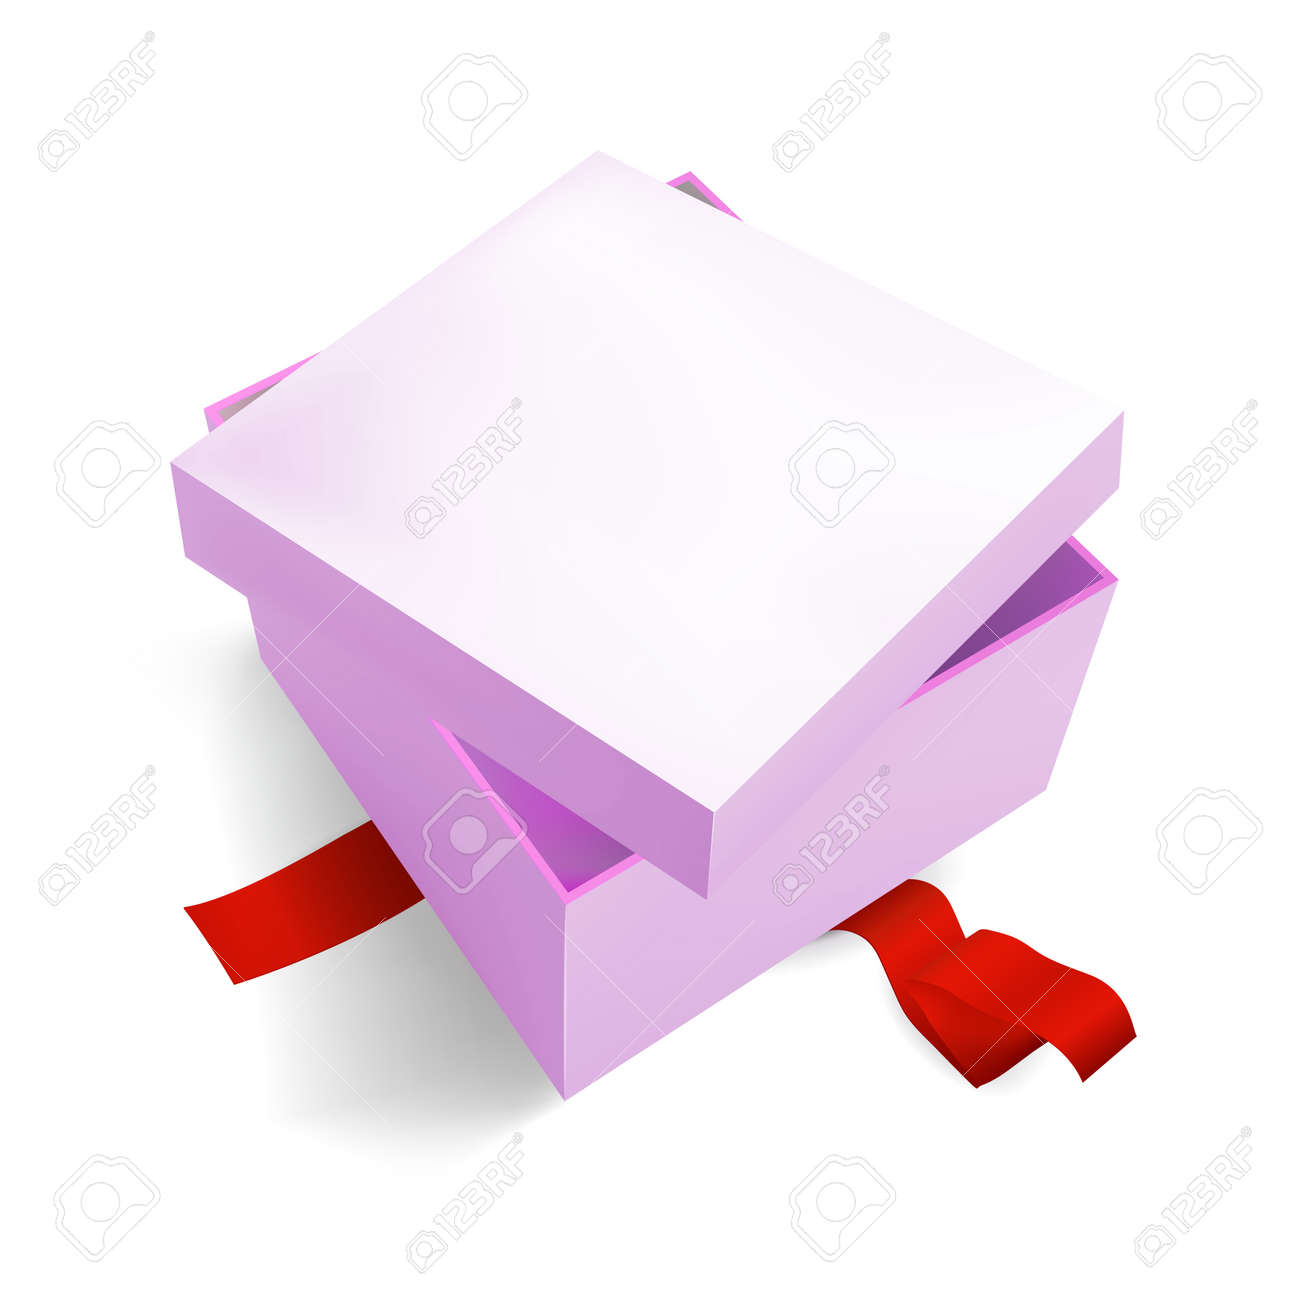 Pink Gift Box 3D, isometric realistic colorful with red Ribbon for Birthday Celebration, Christmas, Party, Holiday. Object isolated on white background. Vector Illustration Eps 10. - 158932668